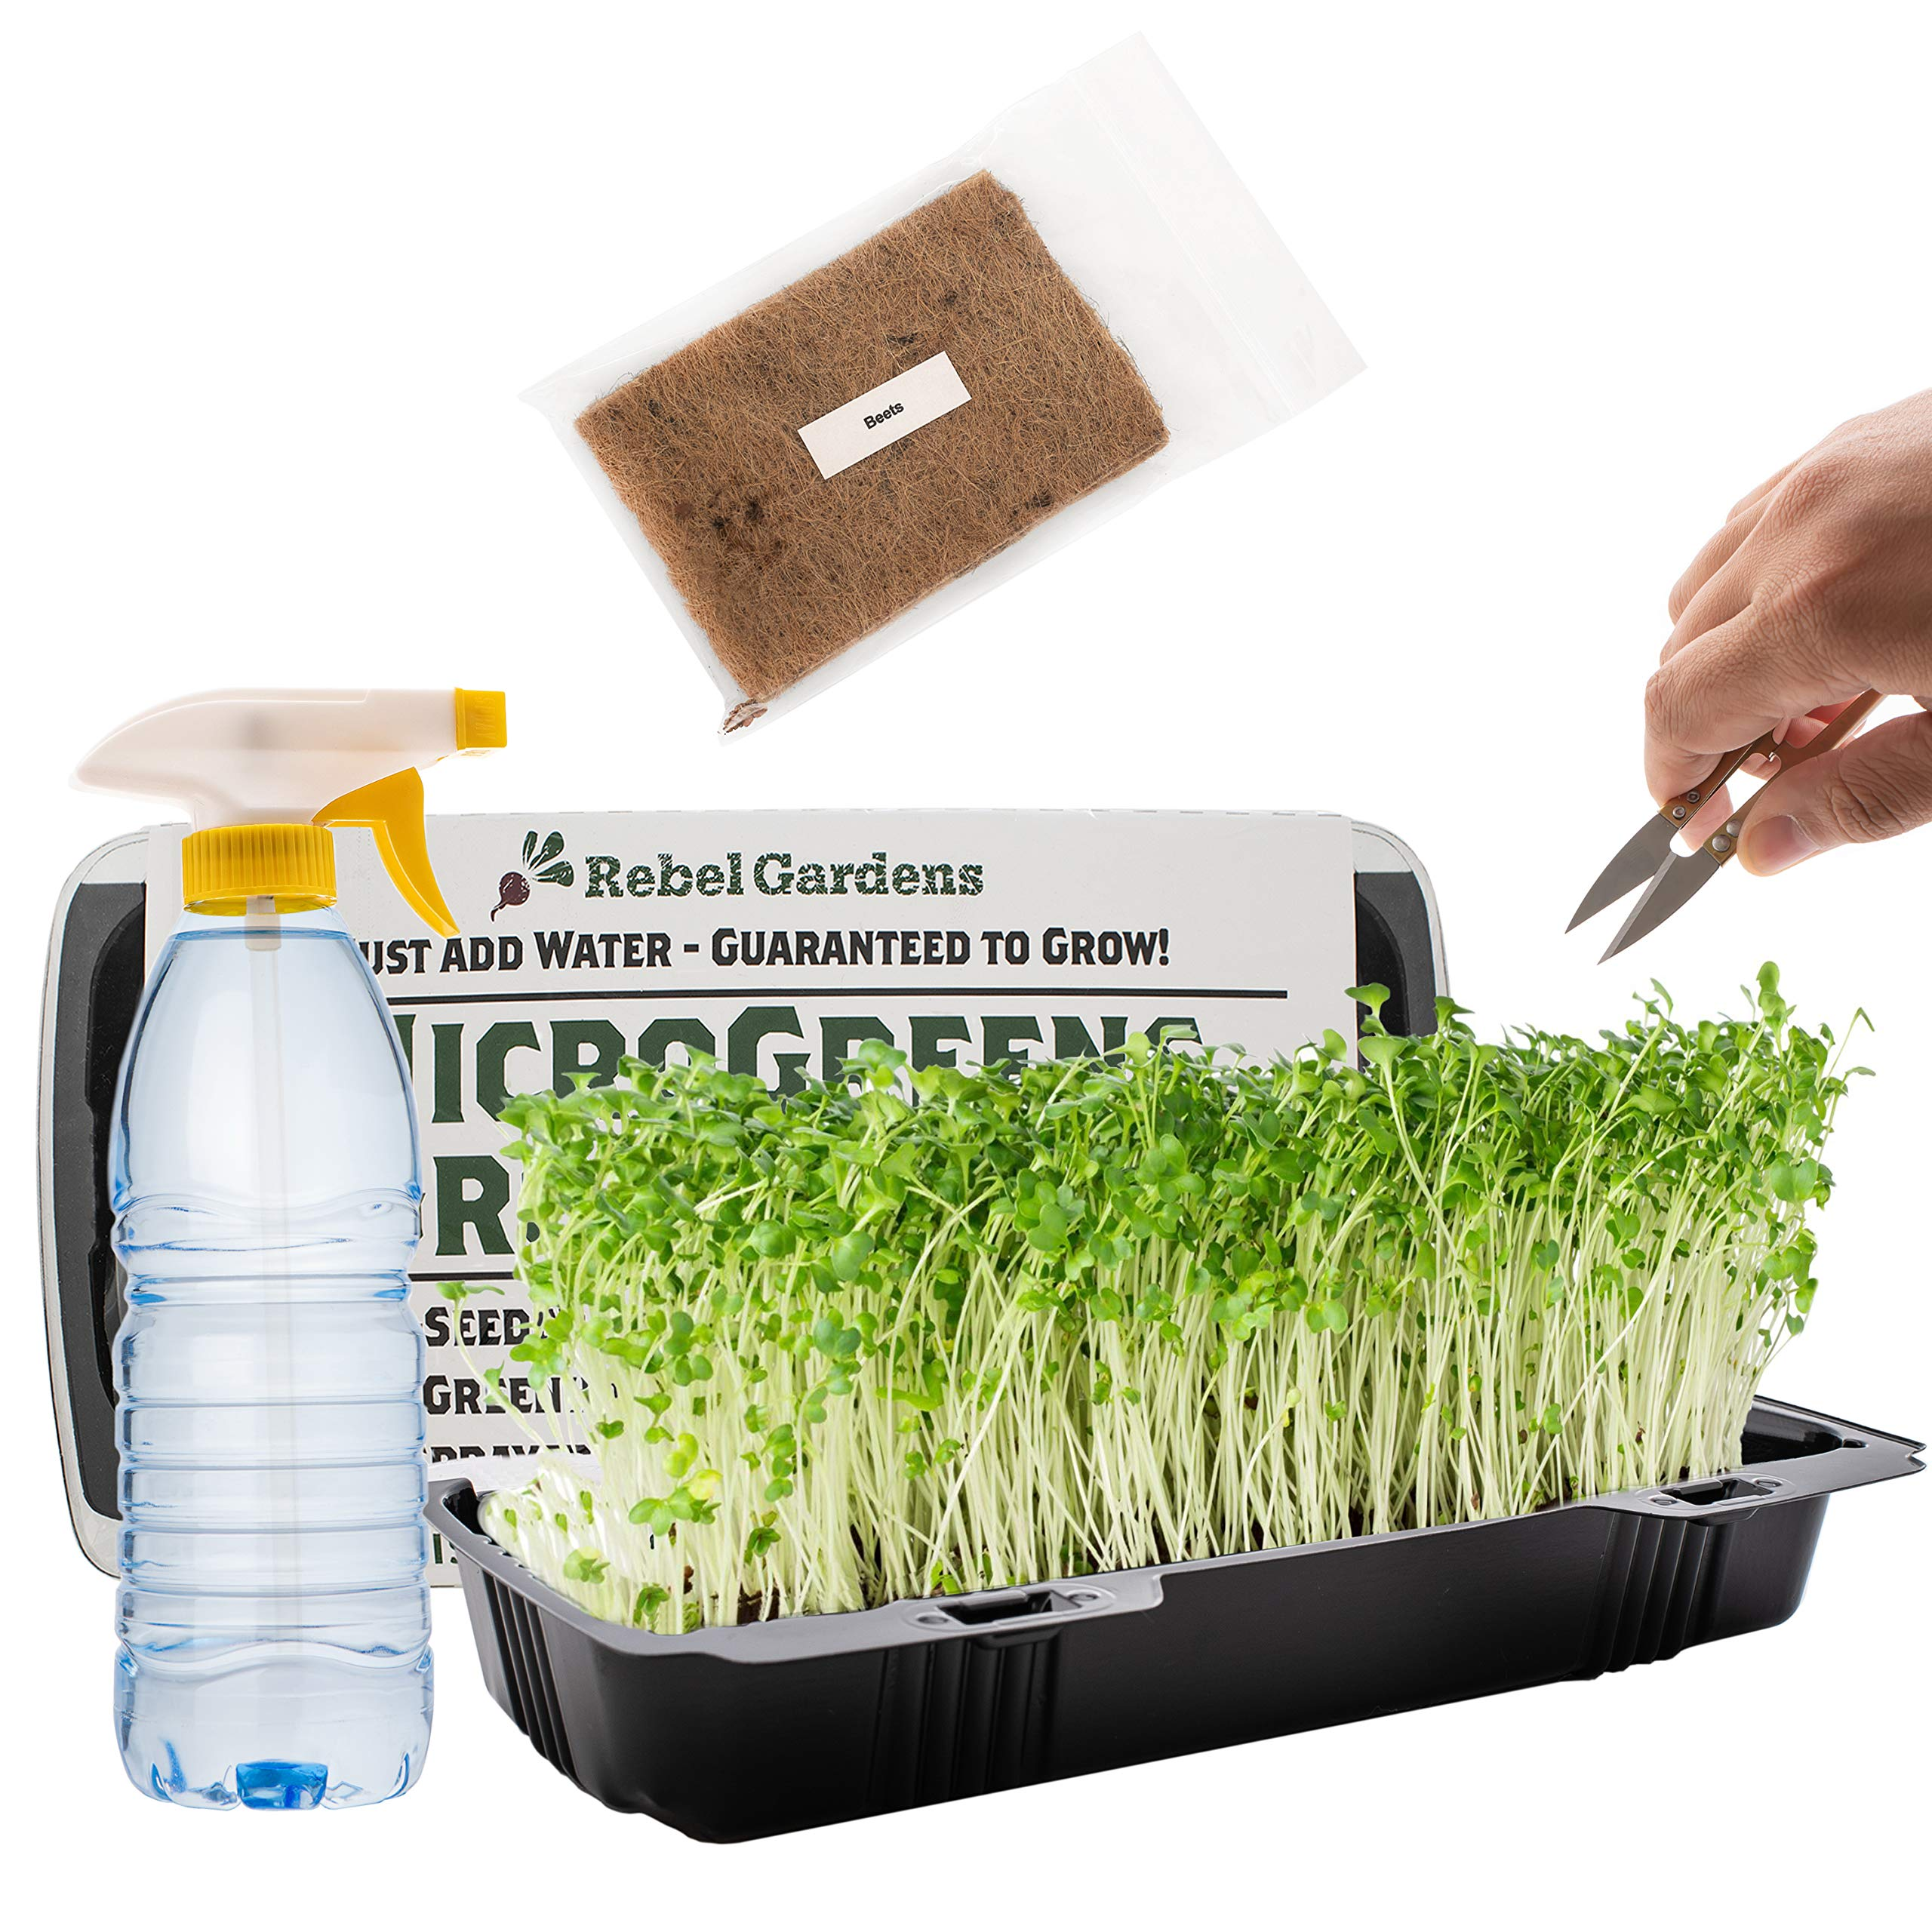 Microgreens Growing Kit - Organic Non GMO Seeds - Indoor Sprouting Greenhouse Tray - Radish Beets Kale Broccoli by Rebel Gardens